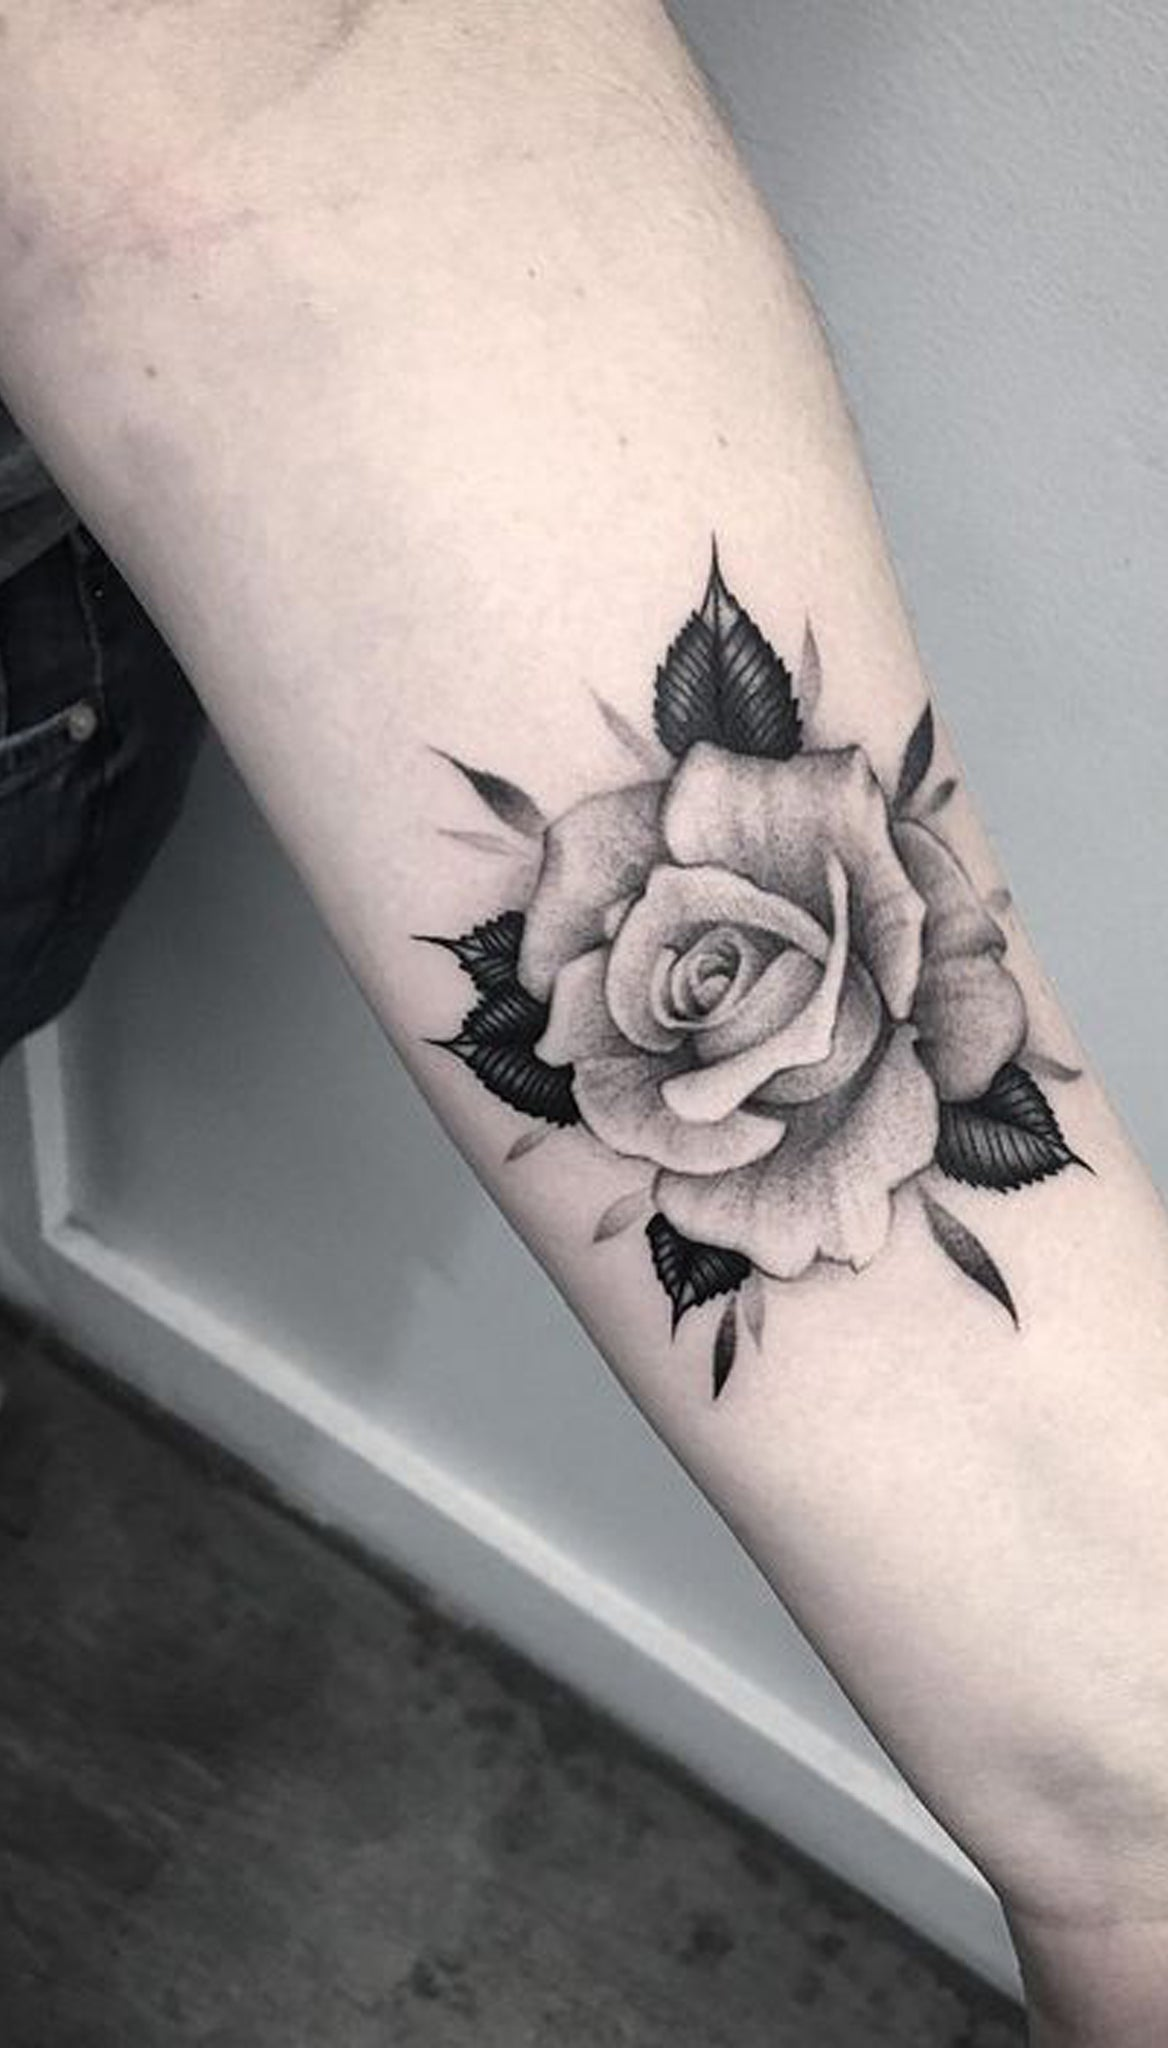 Realistic Flower Tattoos On The Right Forearm Tattoo: 50+ Beautiful Rose Tattoo Ideas